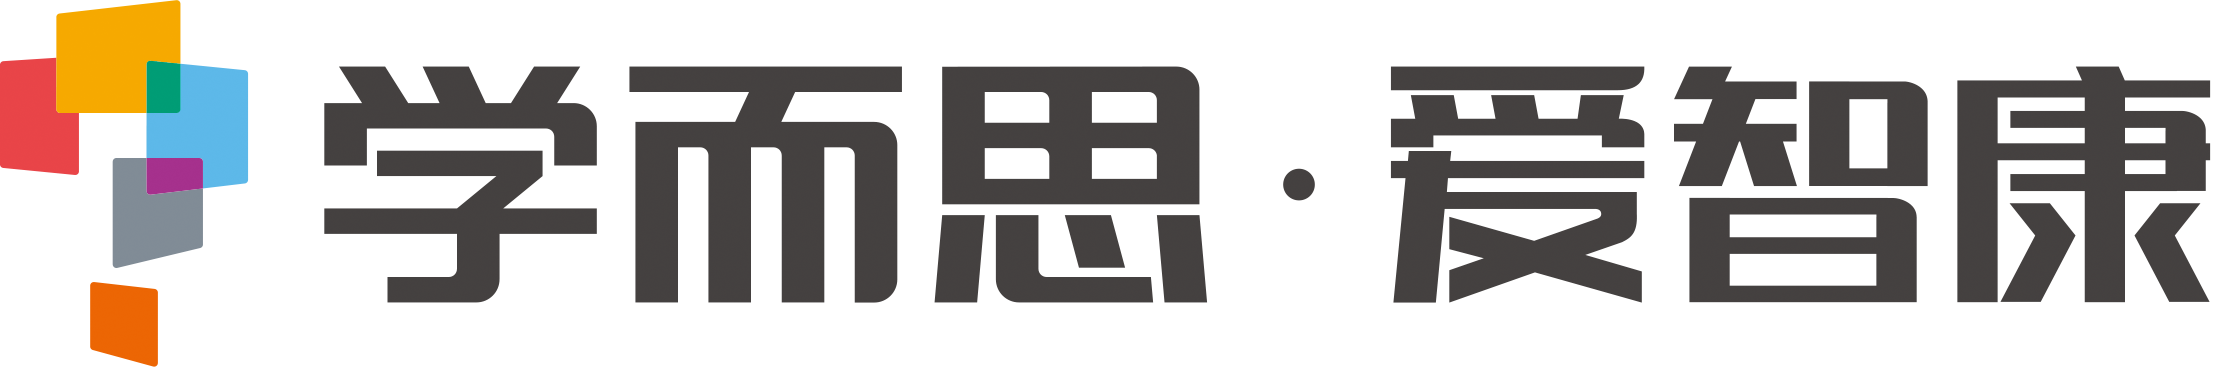 png格式 (1).png